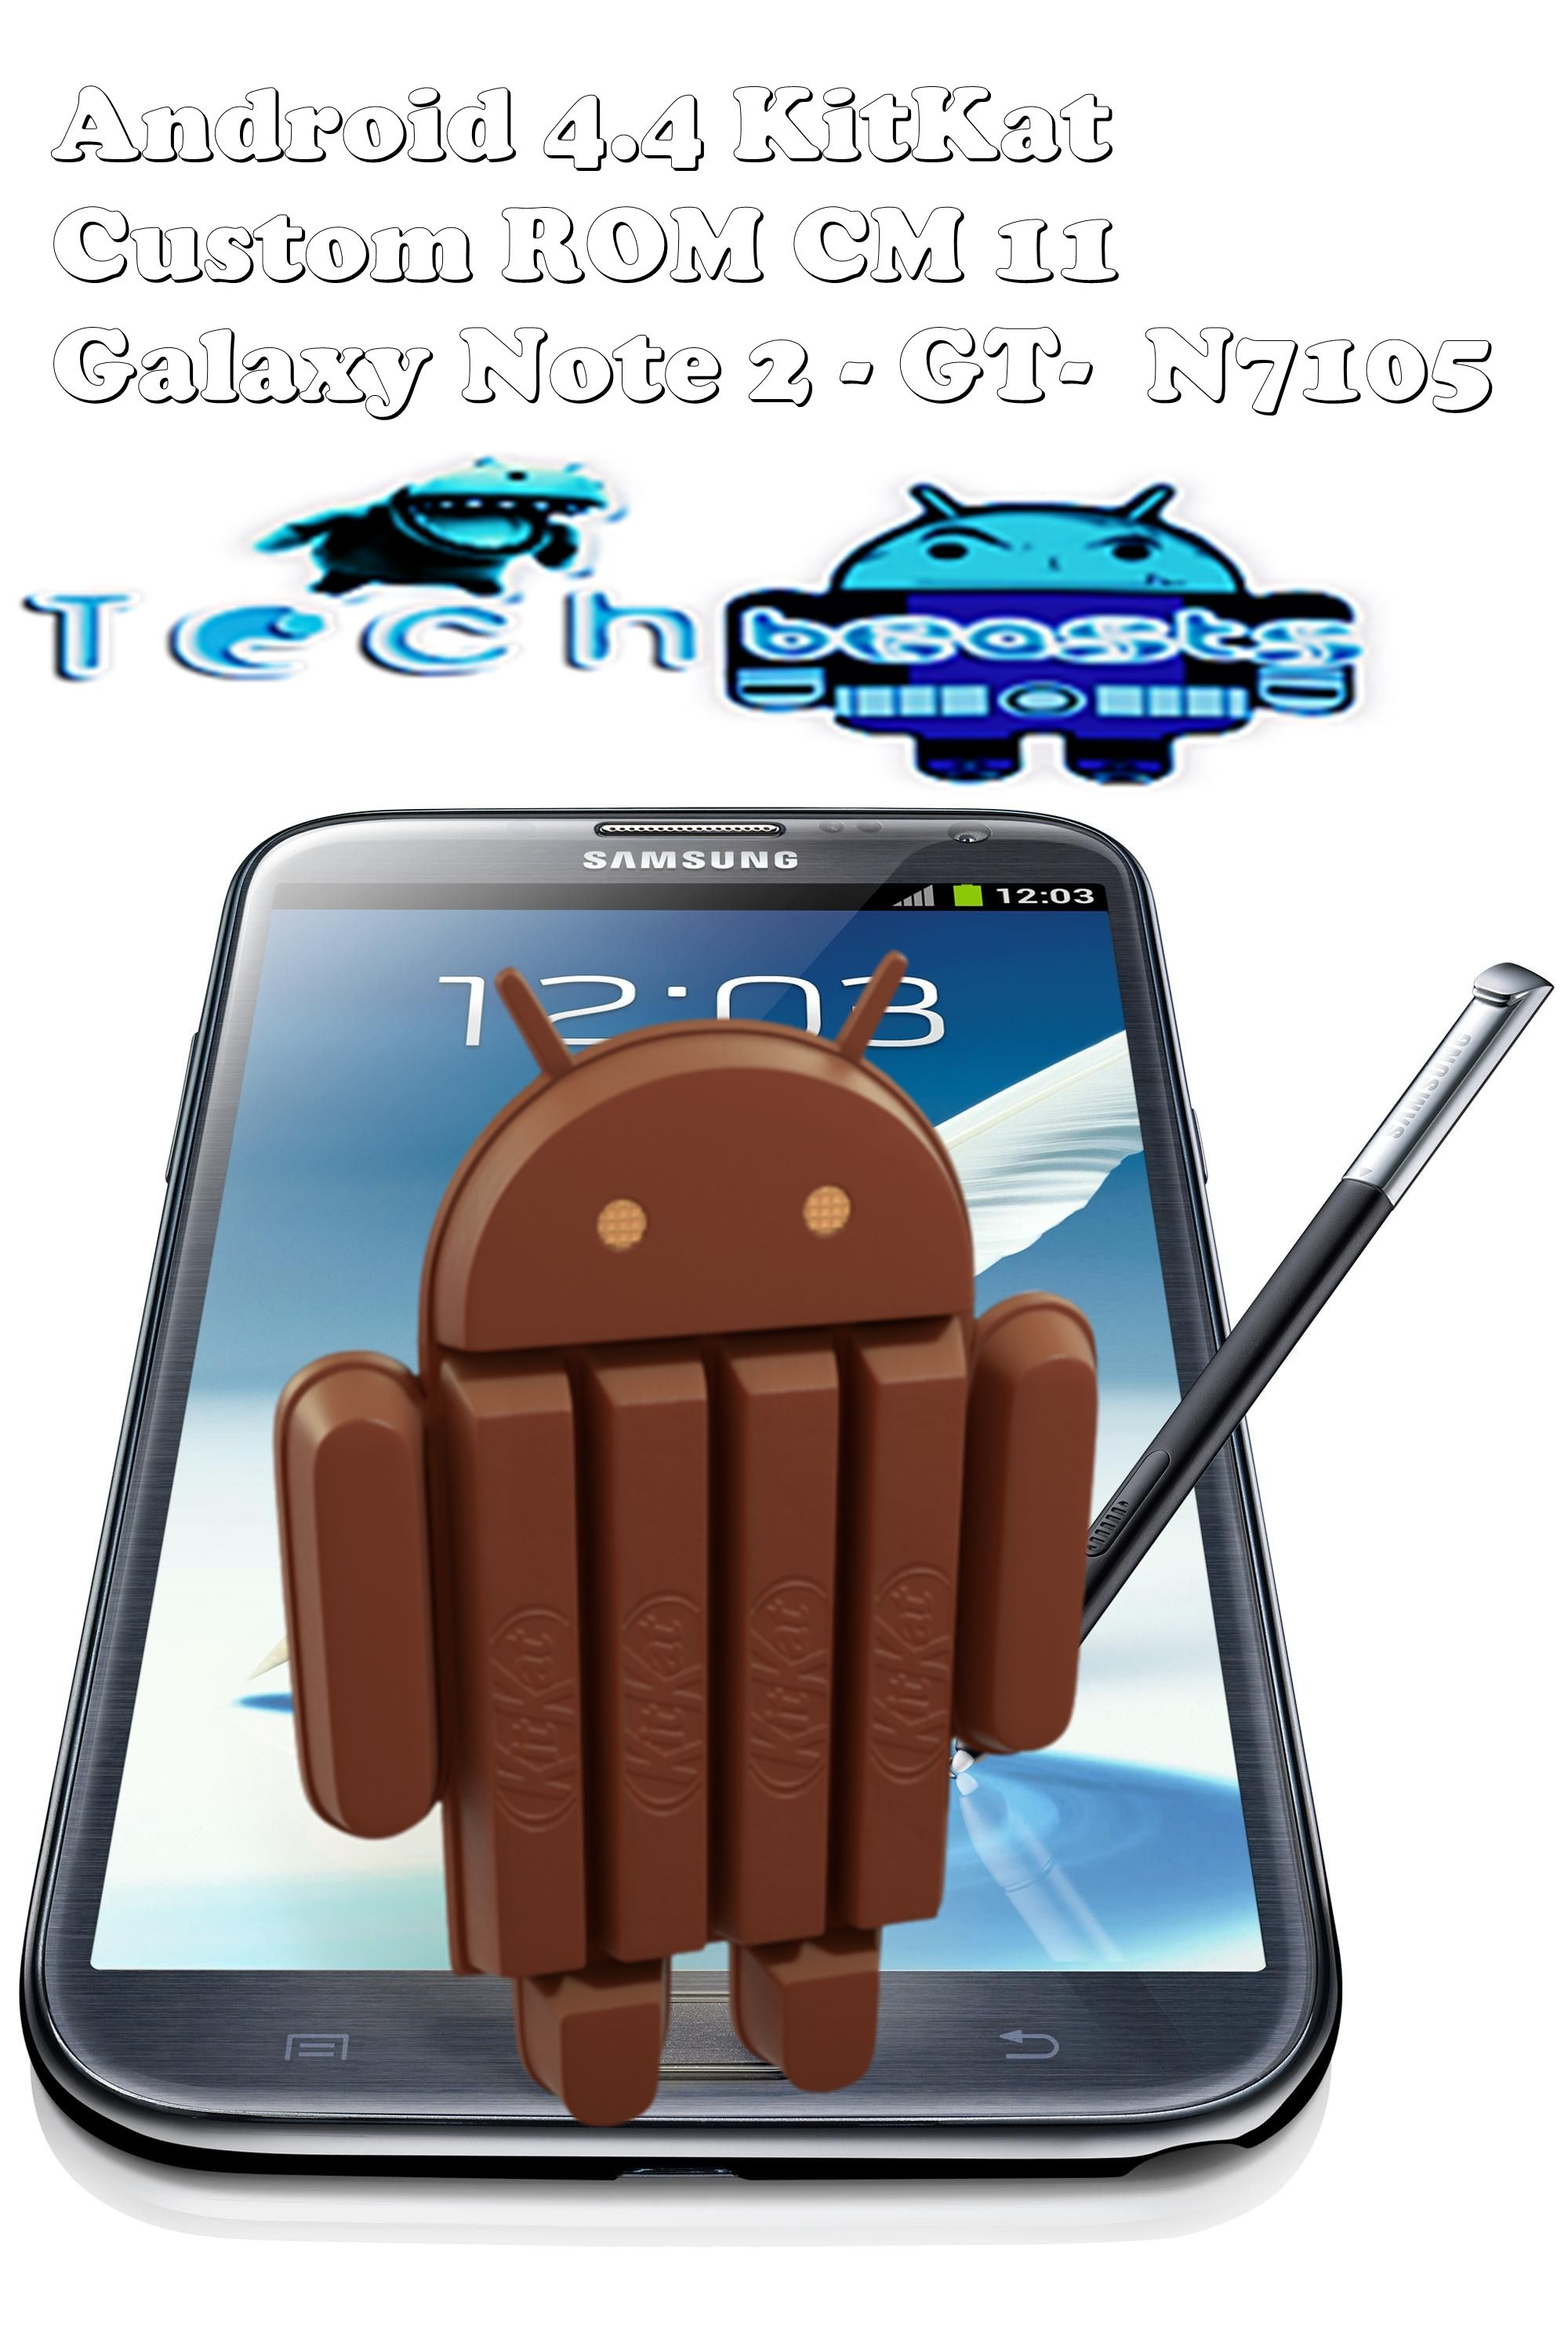 Install Android 4 4 KitKat on Samsung Galaxy Note 2 GT-N7105